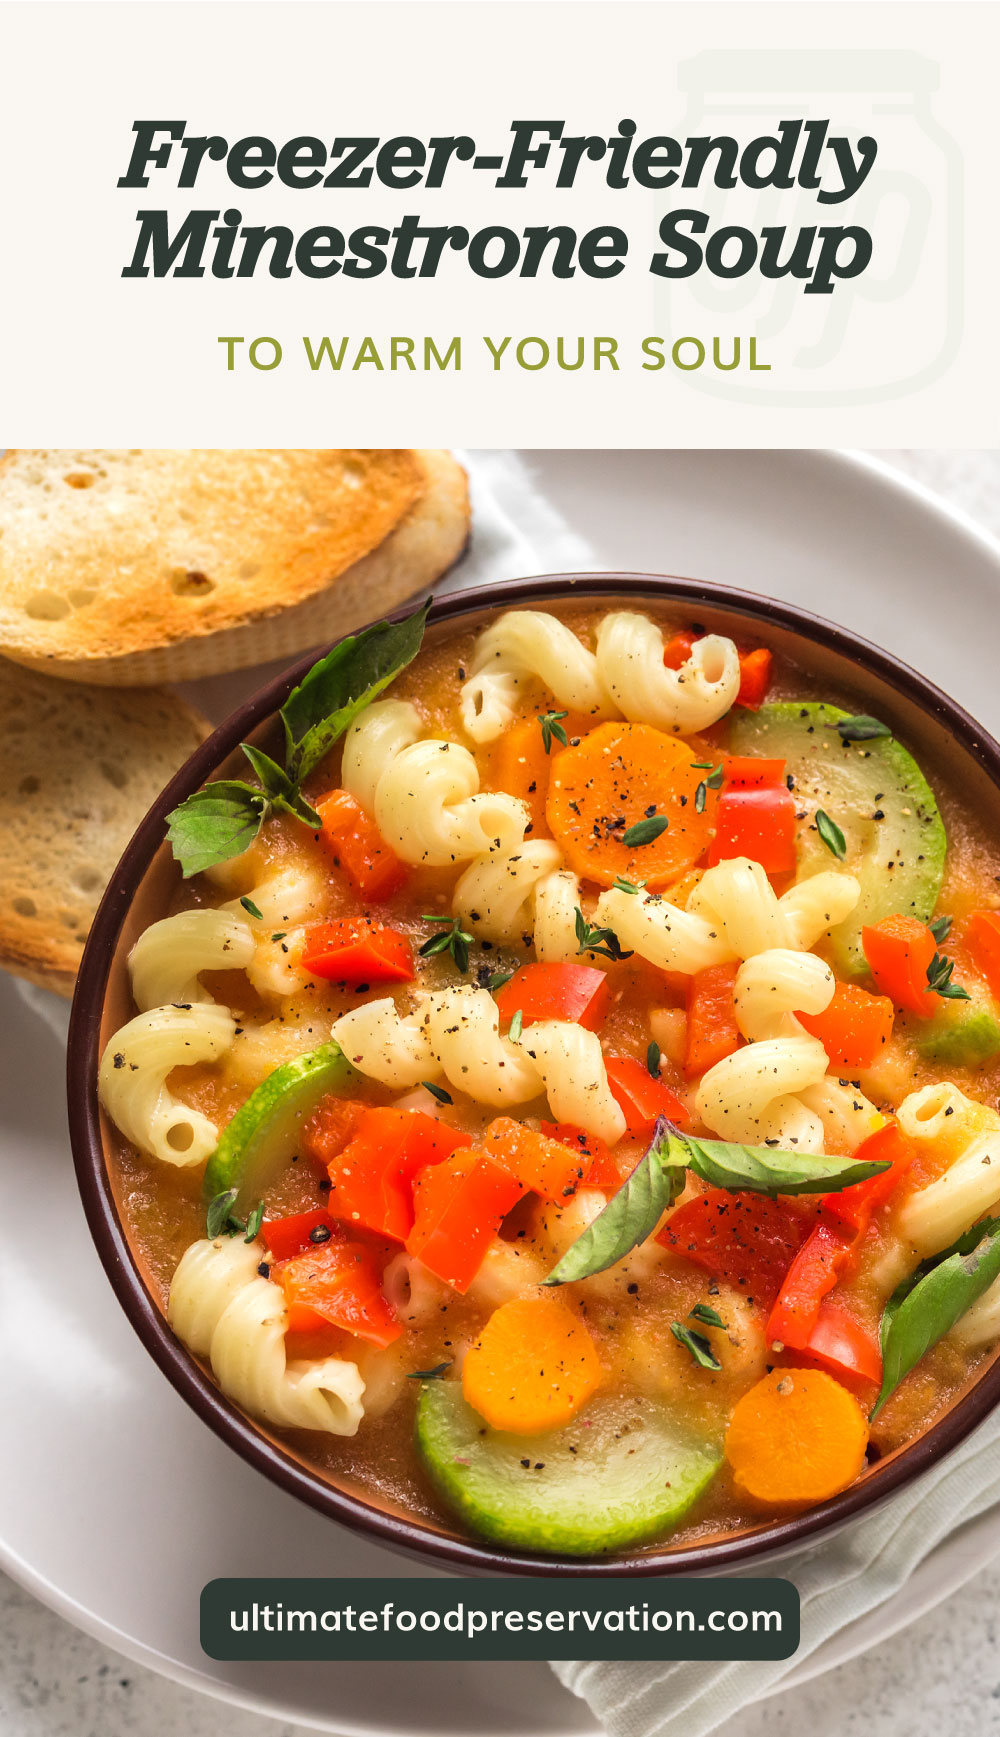 """Text area which says """"Freezer-Friendly Minestrone Soup To Warm Your Soul"""" next to a top view of minestrone soup in abowl served with toasts followed by another text area which says ultimatefoodpreservation.com"""